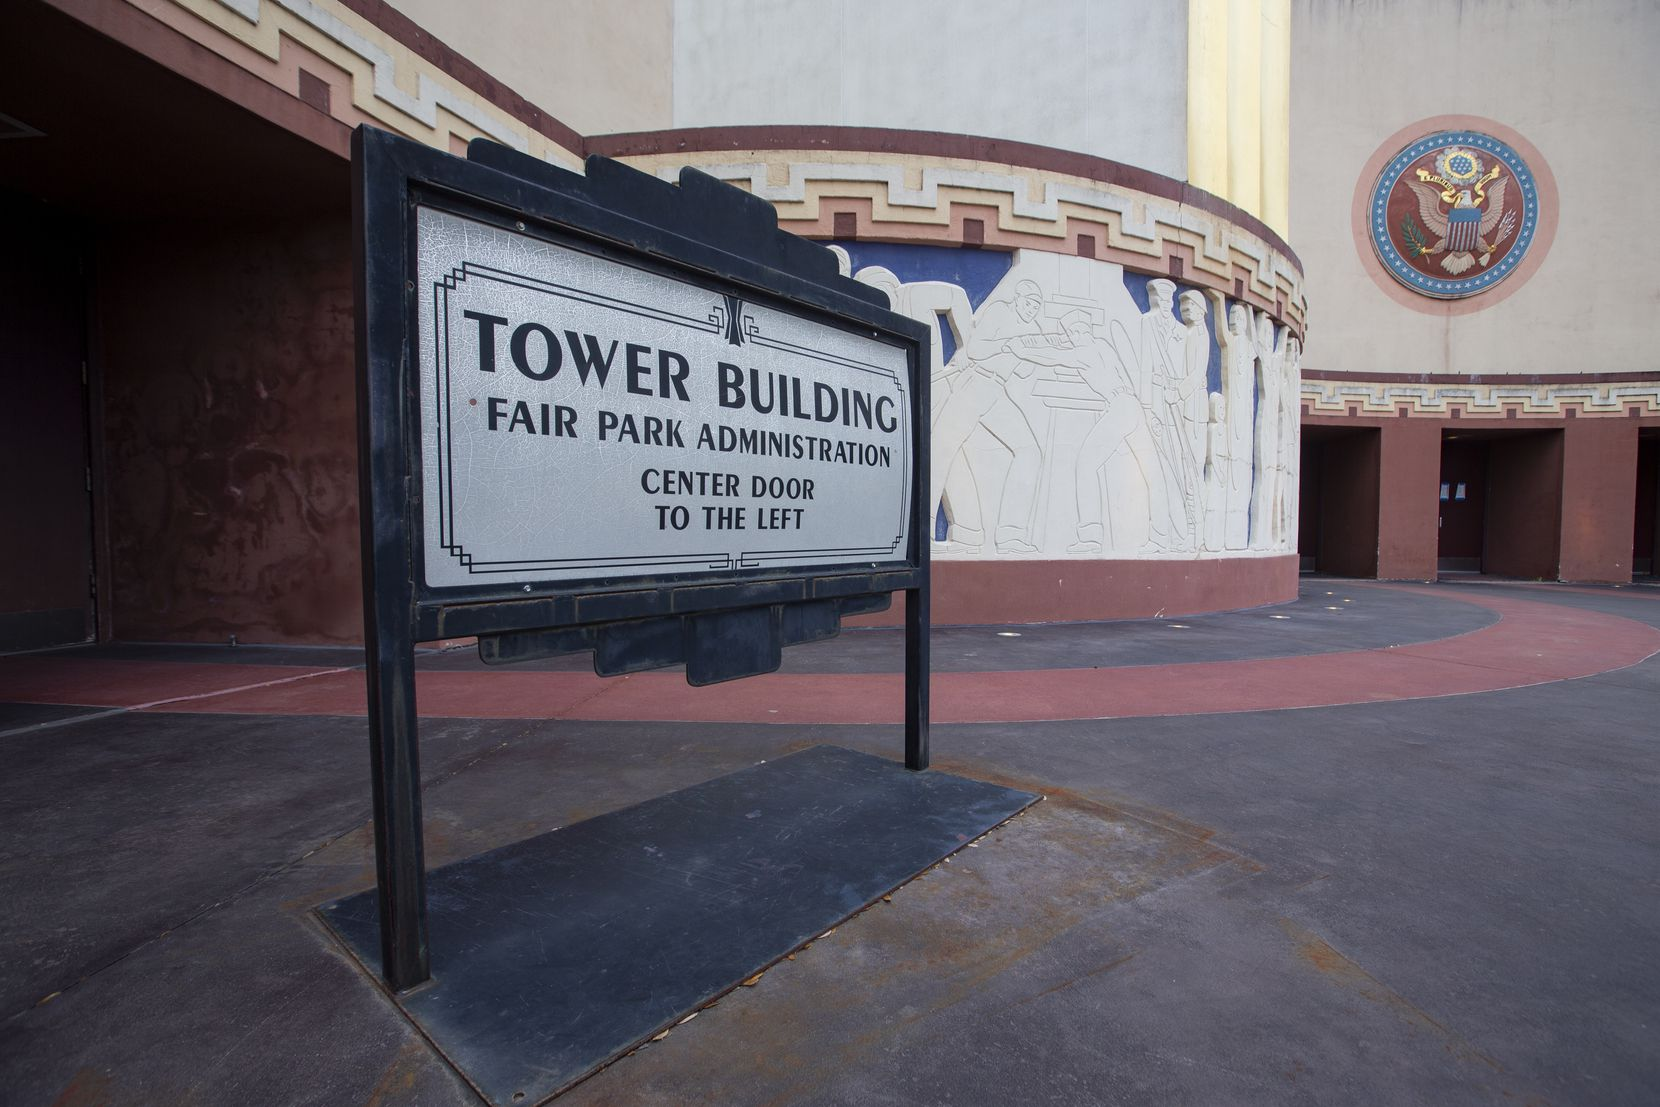 The Tower Building at Fair Park in Dallas photographed on Wednesday, Jan. 7, 2021. (Juan Figueroa/ The Dallas Morning News)